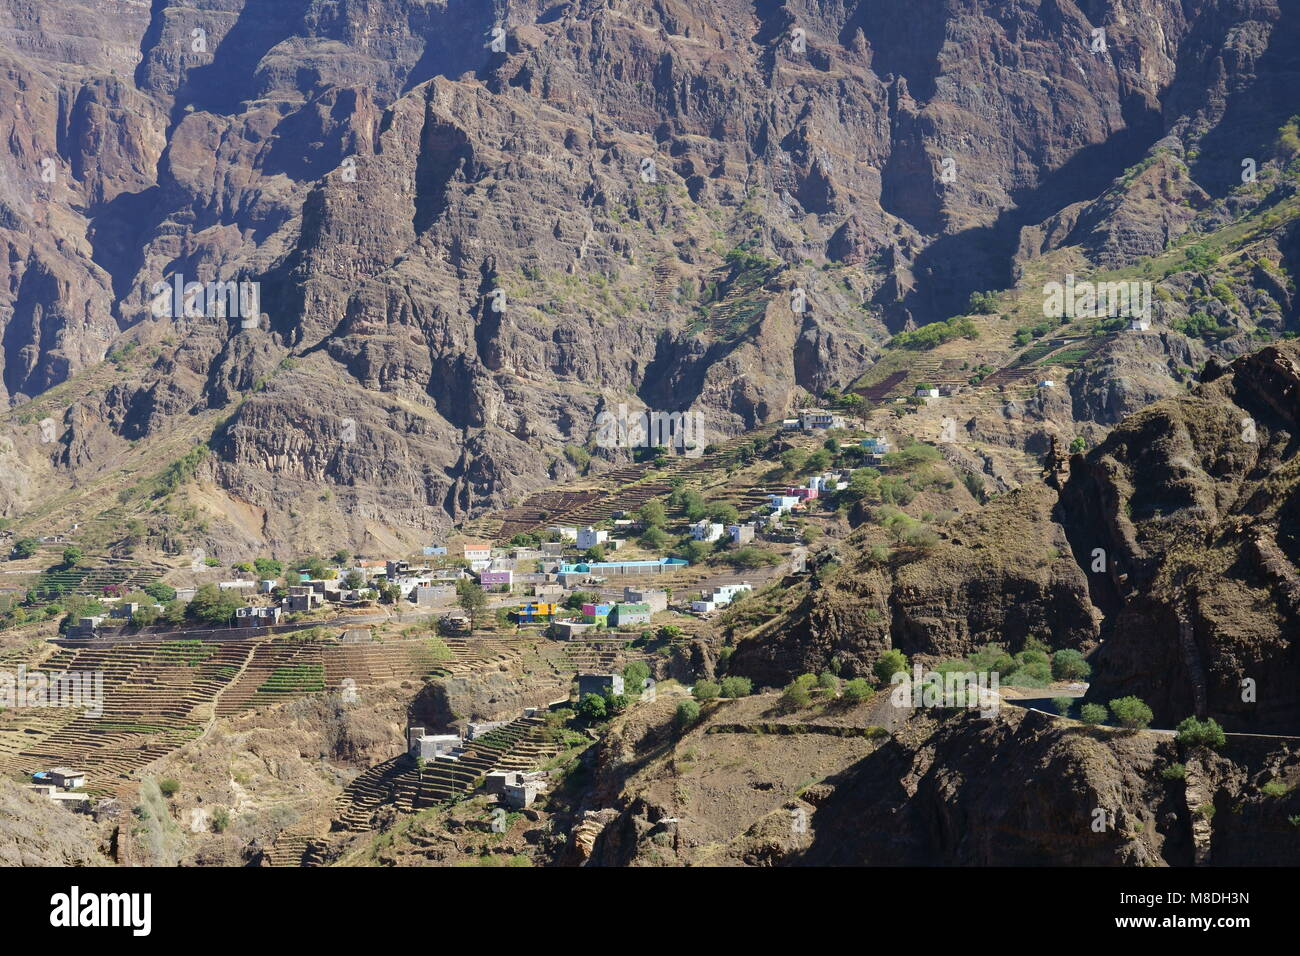 Alto Mira, Settlement at the Western Part of Santo Antao Island, Cap Verde - Stock Image